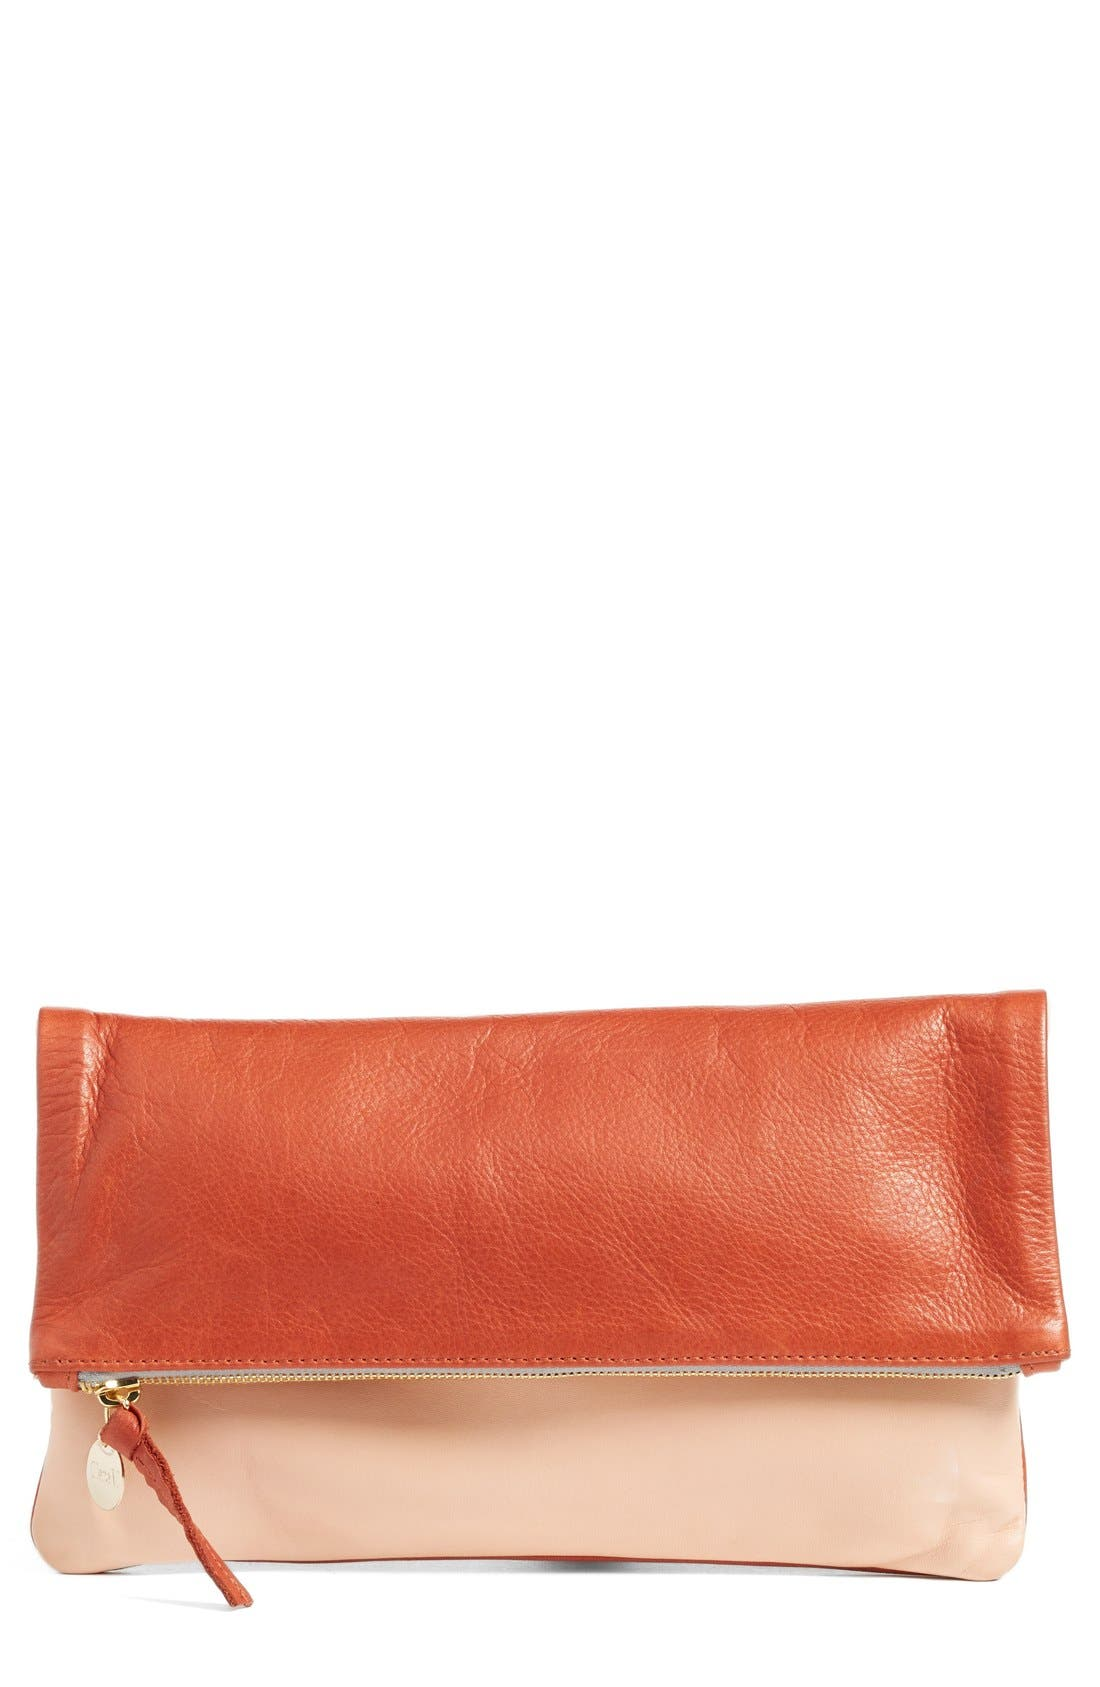 Alternate Image 1 Selected - Clare V. Colorblock Leather Foldover Clutch